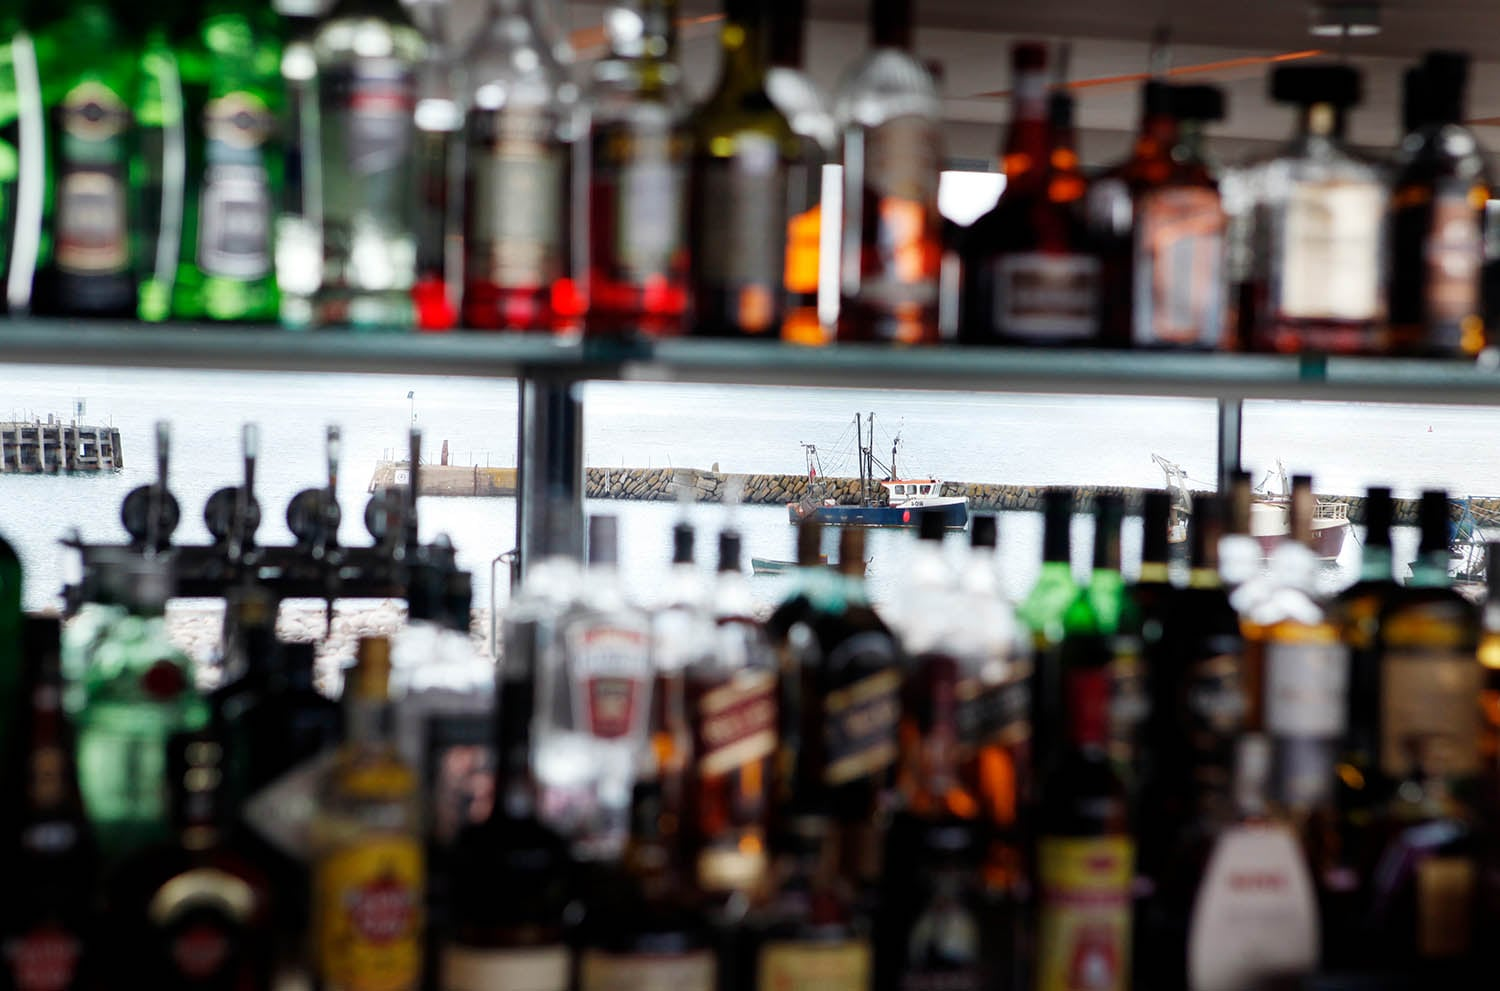 Mirrored bar - excellent drinks selection